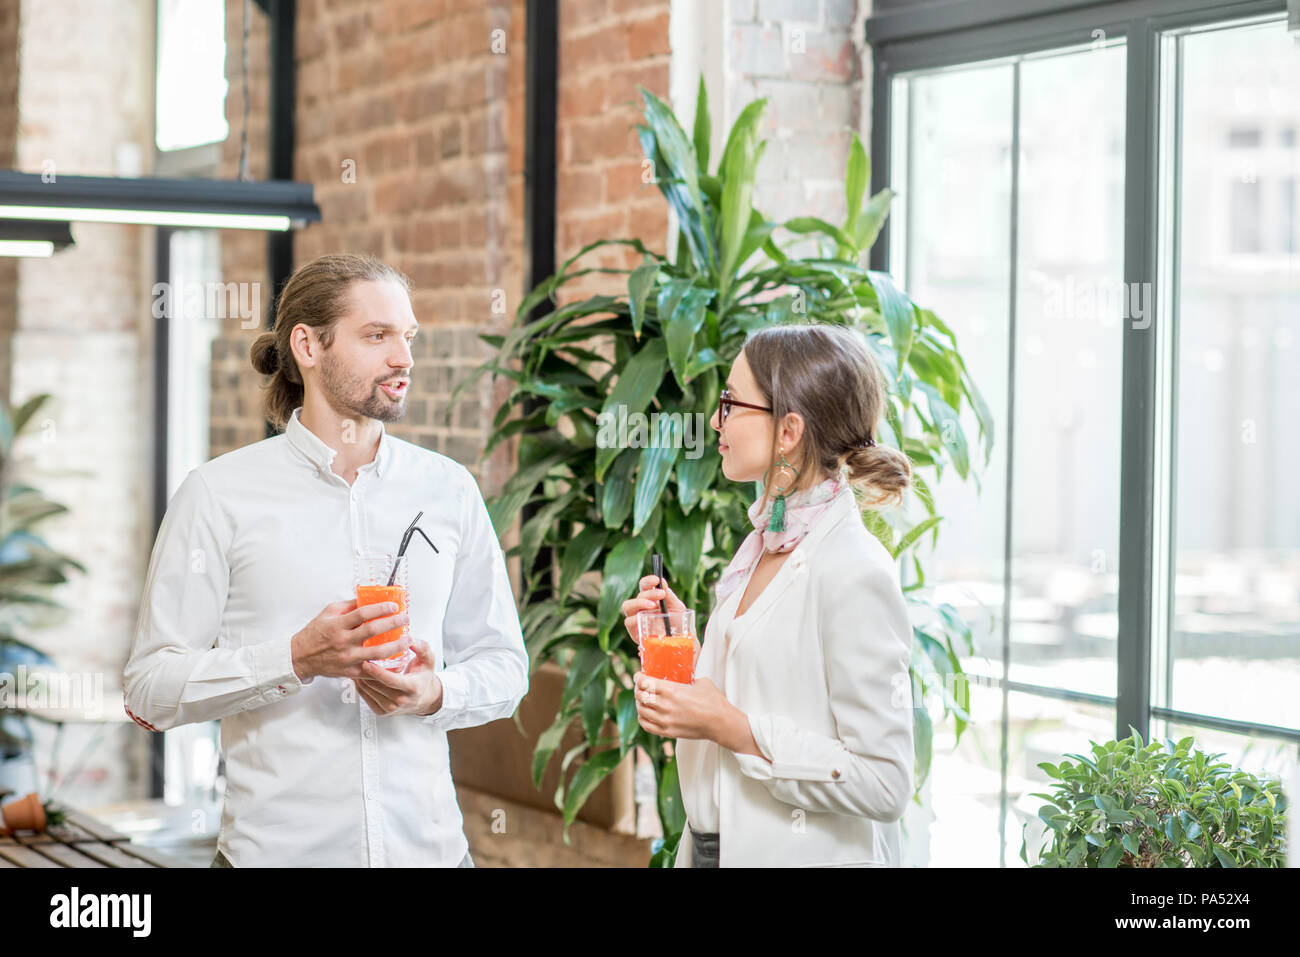 Young couple dressed in white standing together with drinks during the conversation in the beautiful loft interior Stock Photo